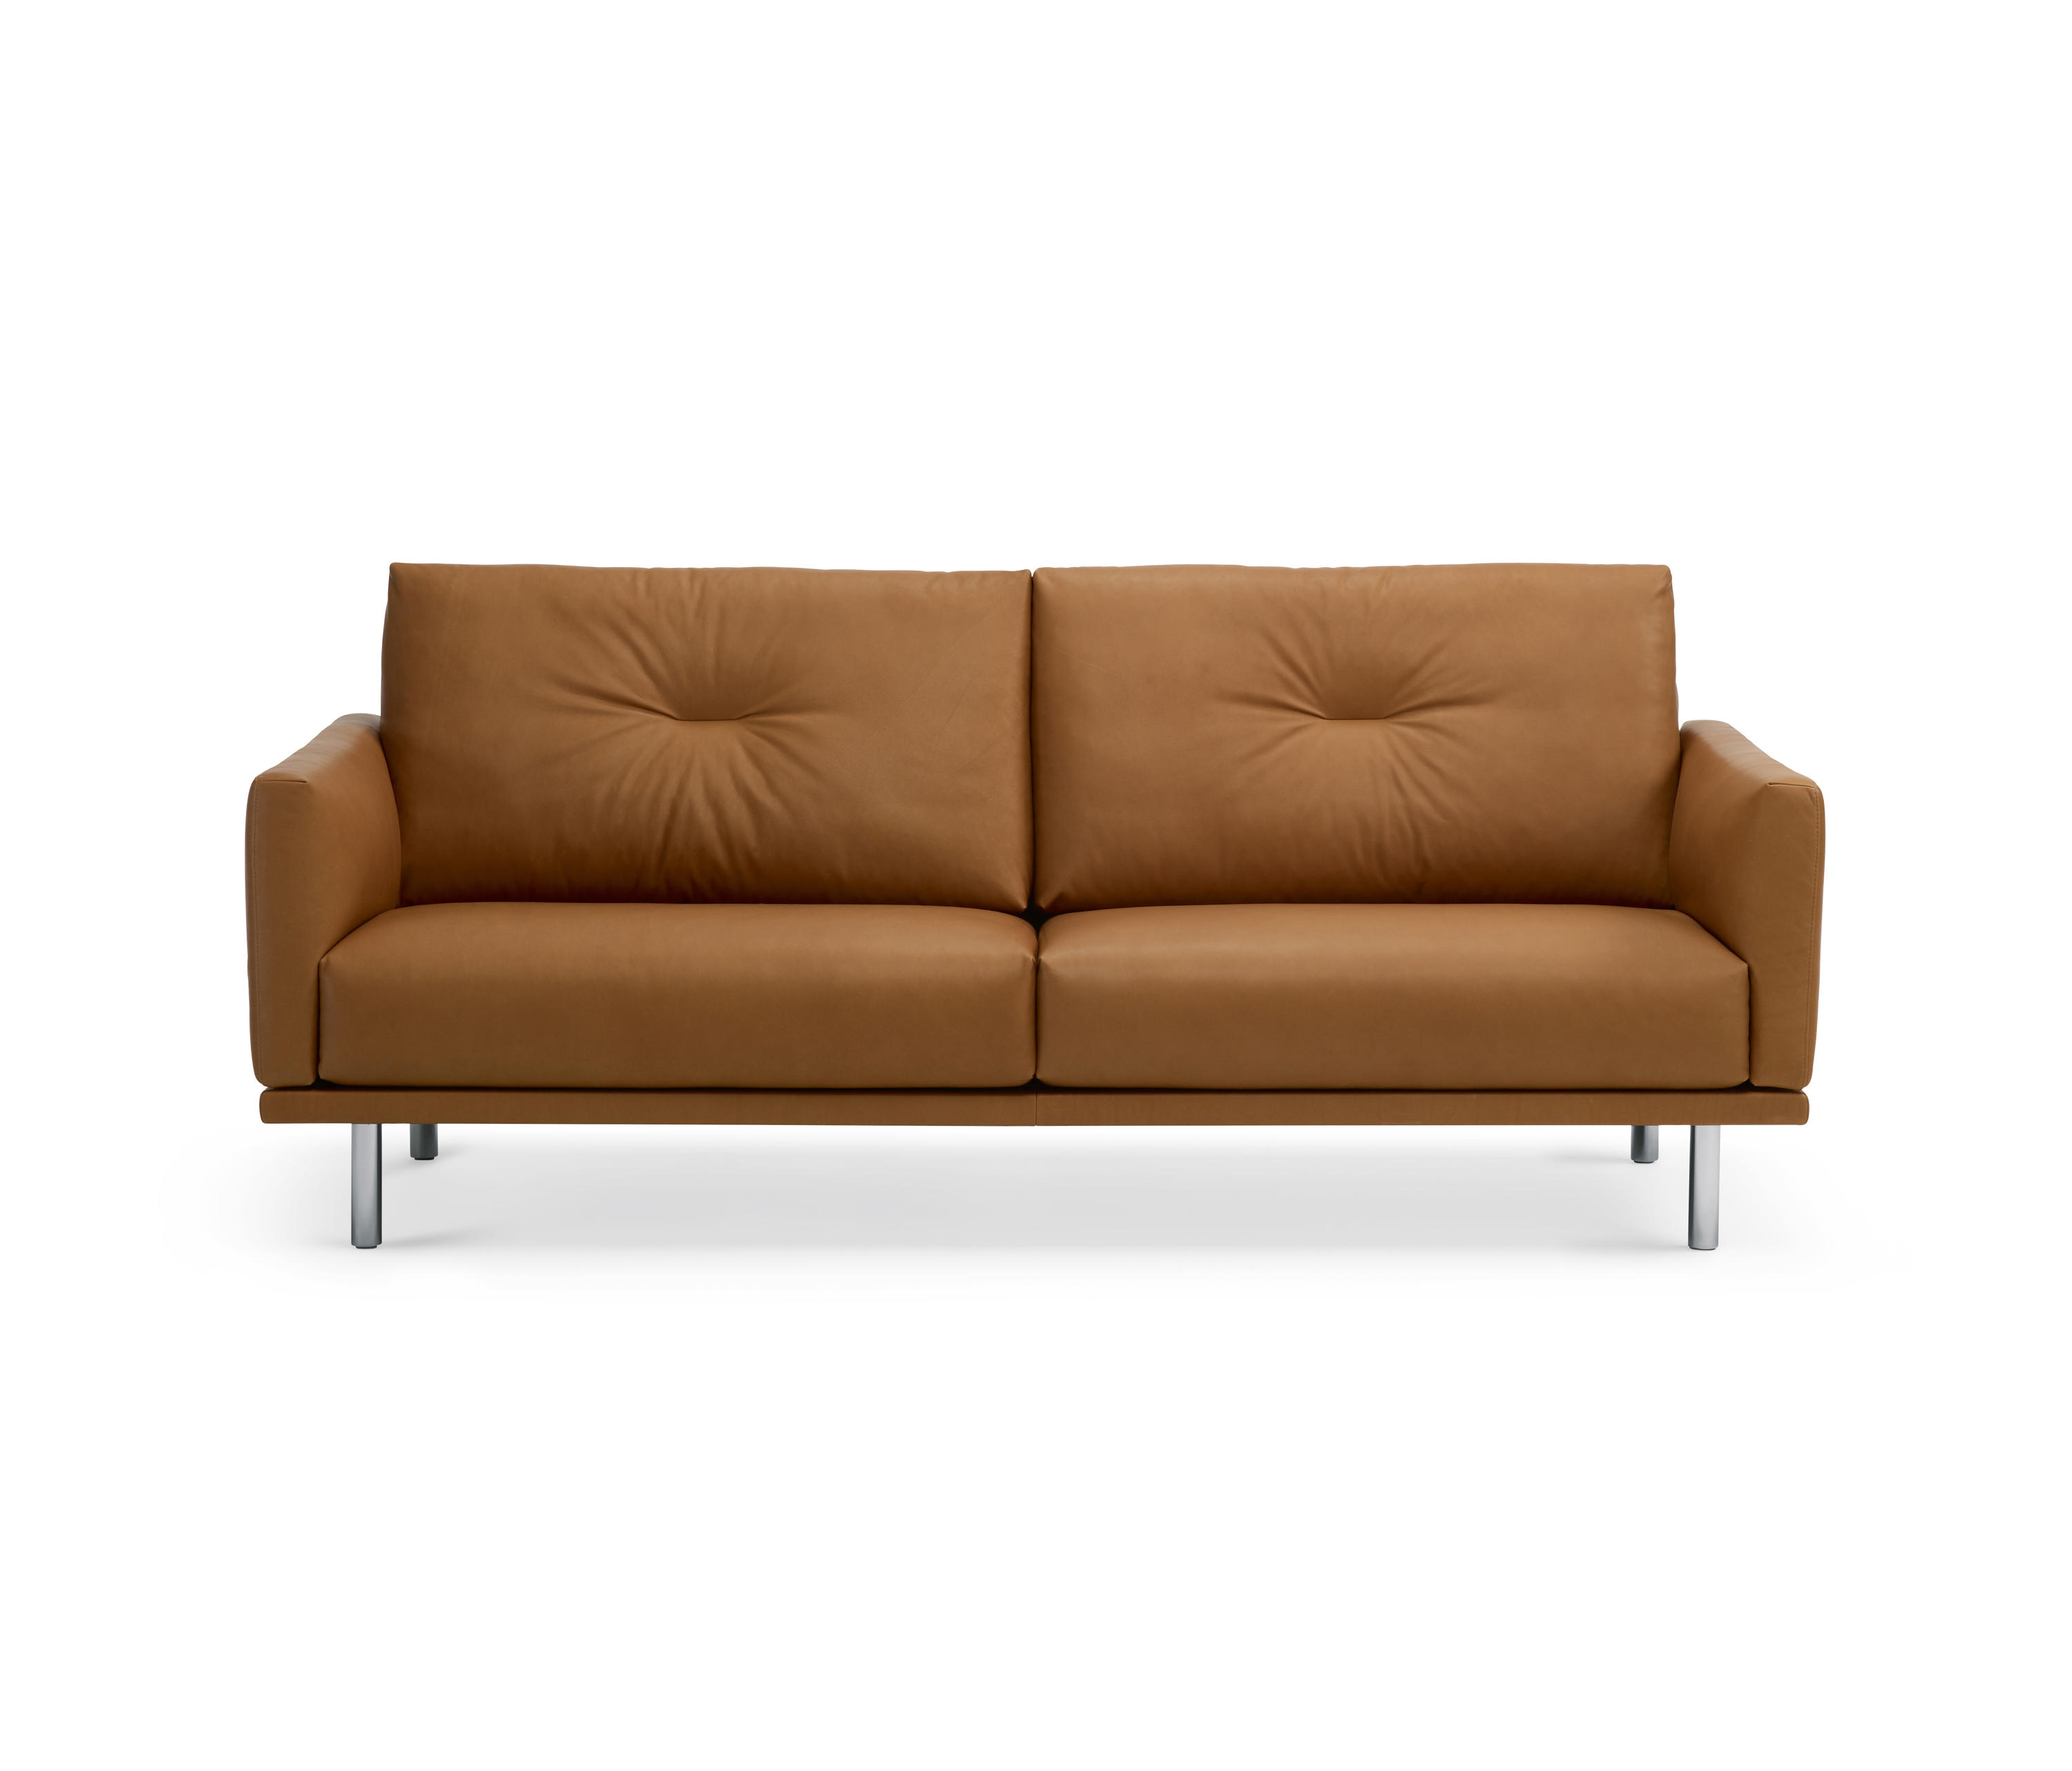 1630 MELLOW - Sofas von Intertime | Architonic